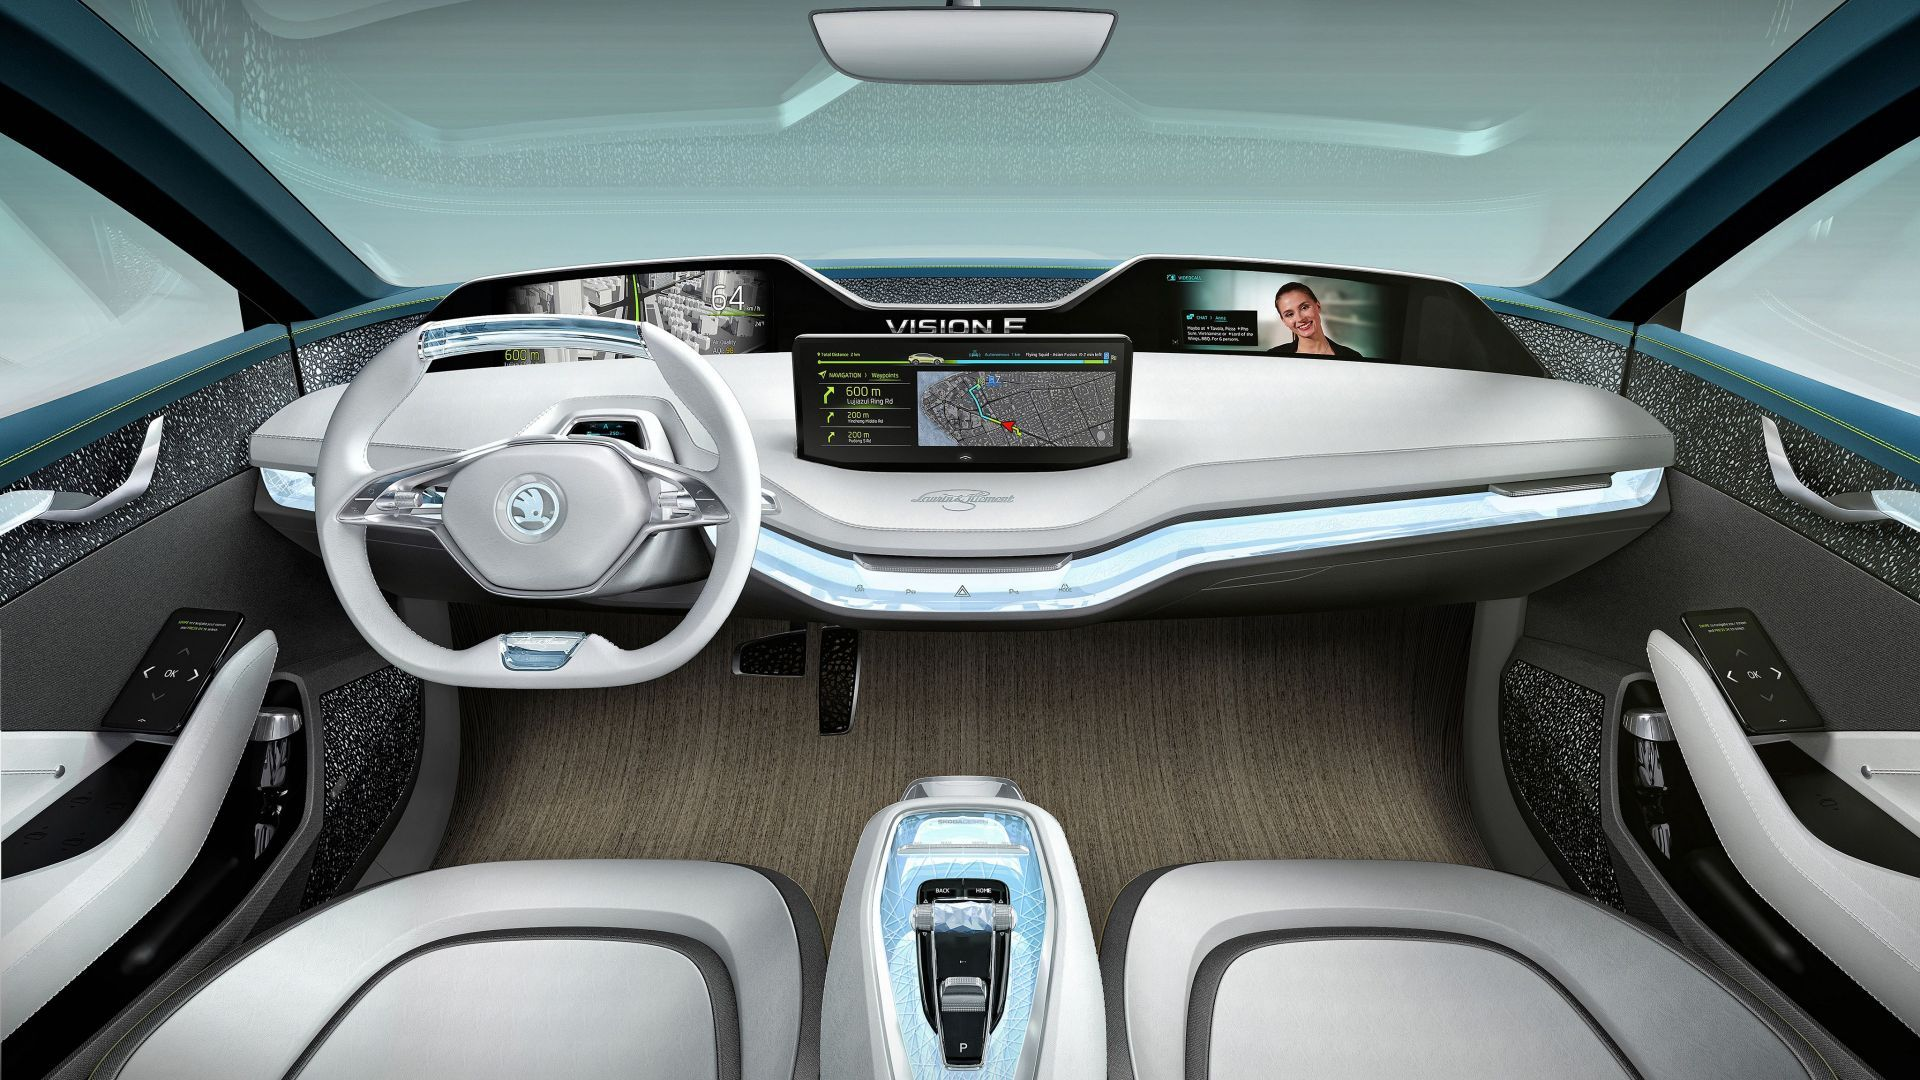 Skoda Vision X electric car interior 4k horizontal